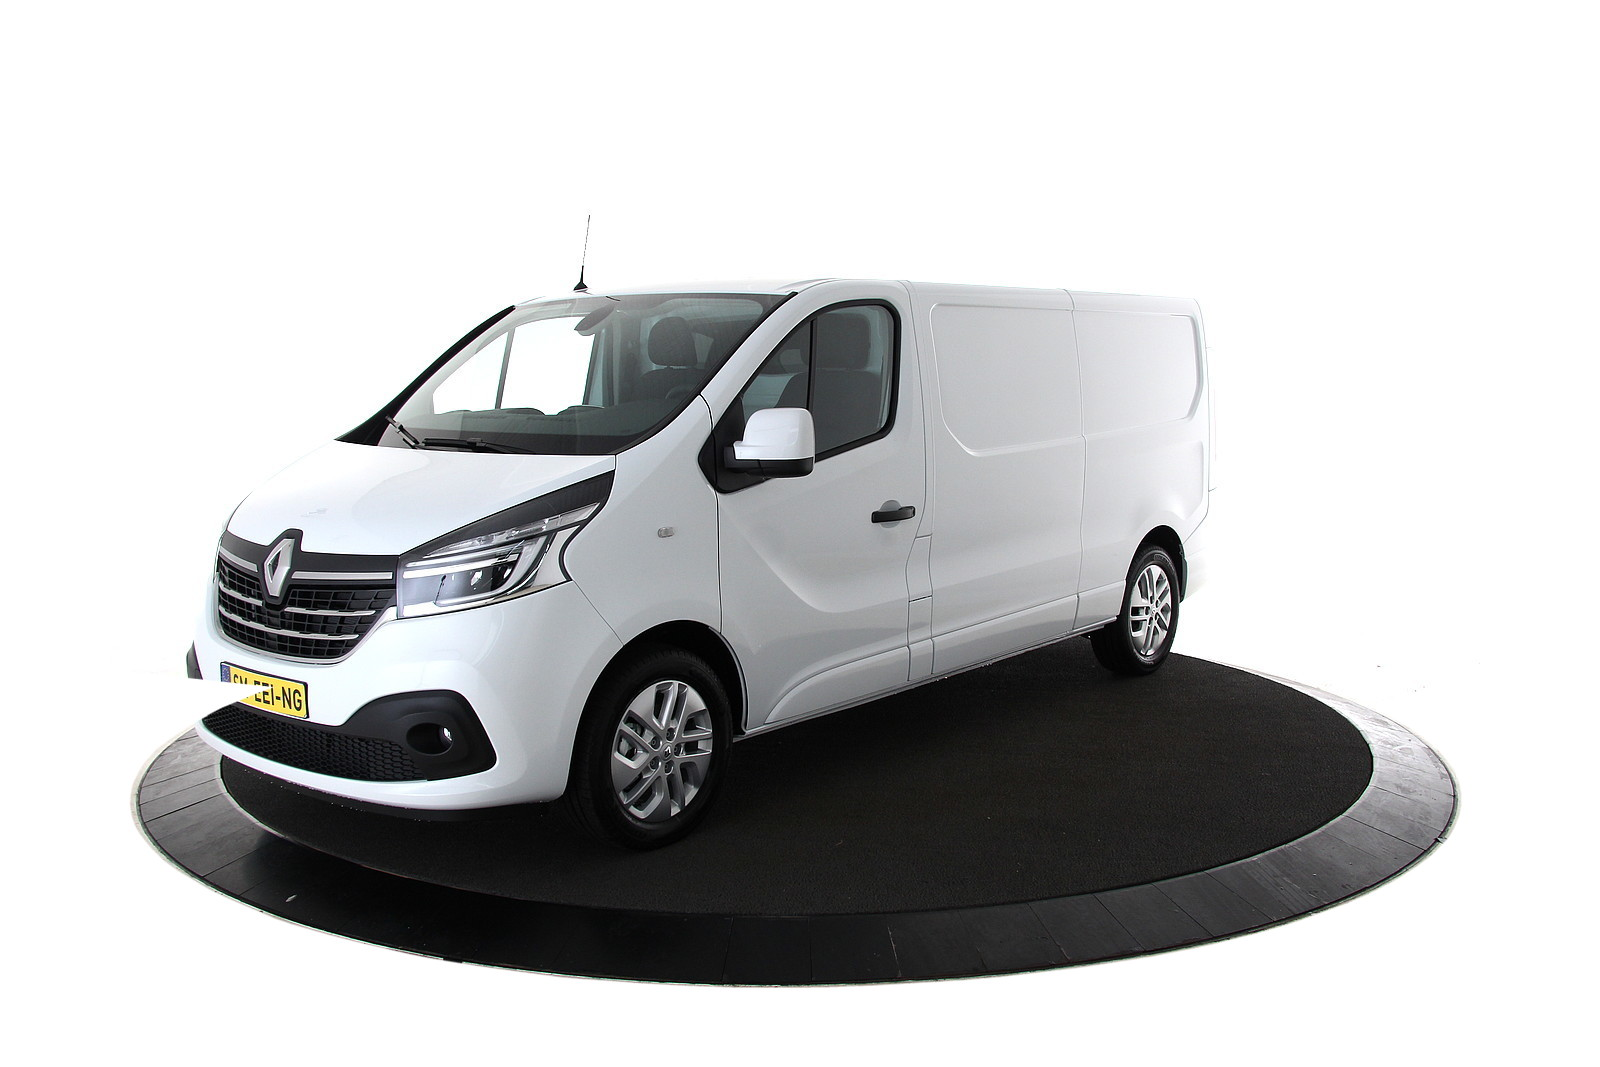 Renault Trafic 2.0 dCi 145PK T29 L2H1 Luxe